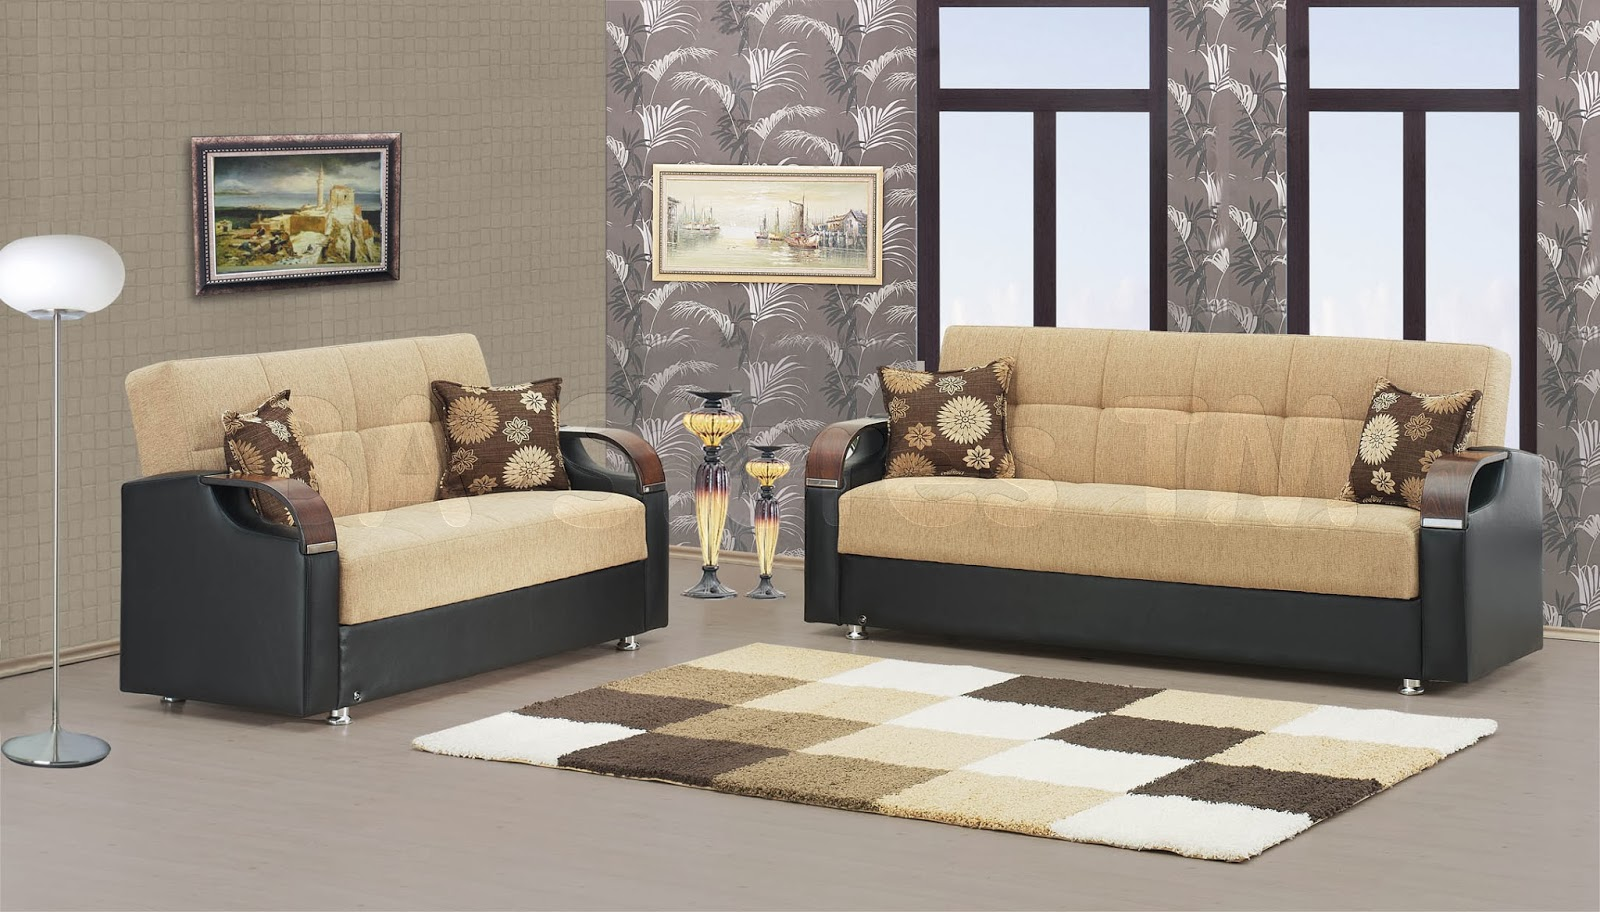 Sofa Set Designs For Living Room Of Living Room Design With Leather Sofa Living Room